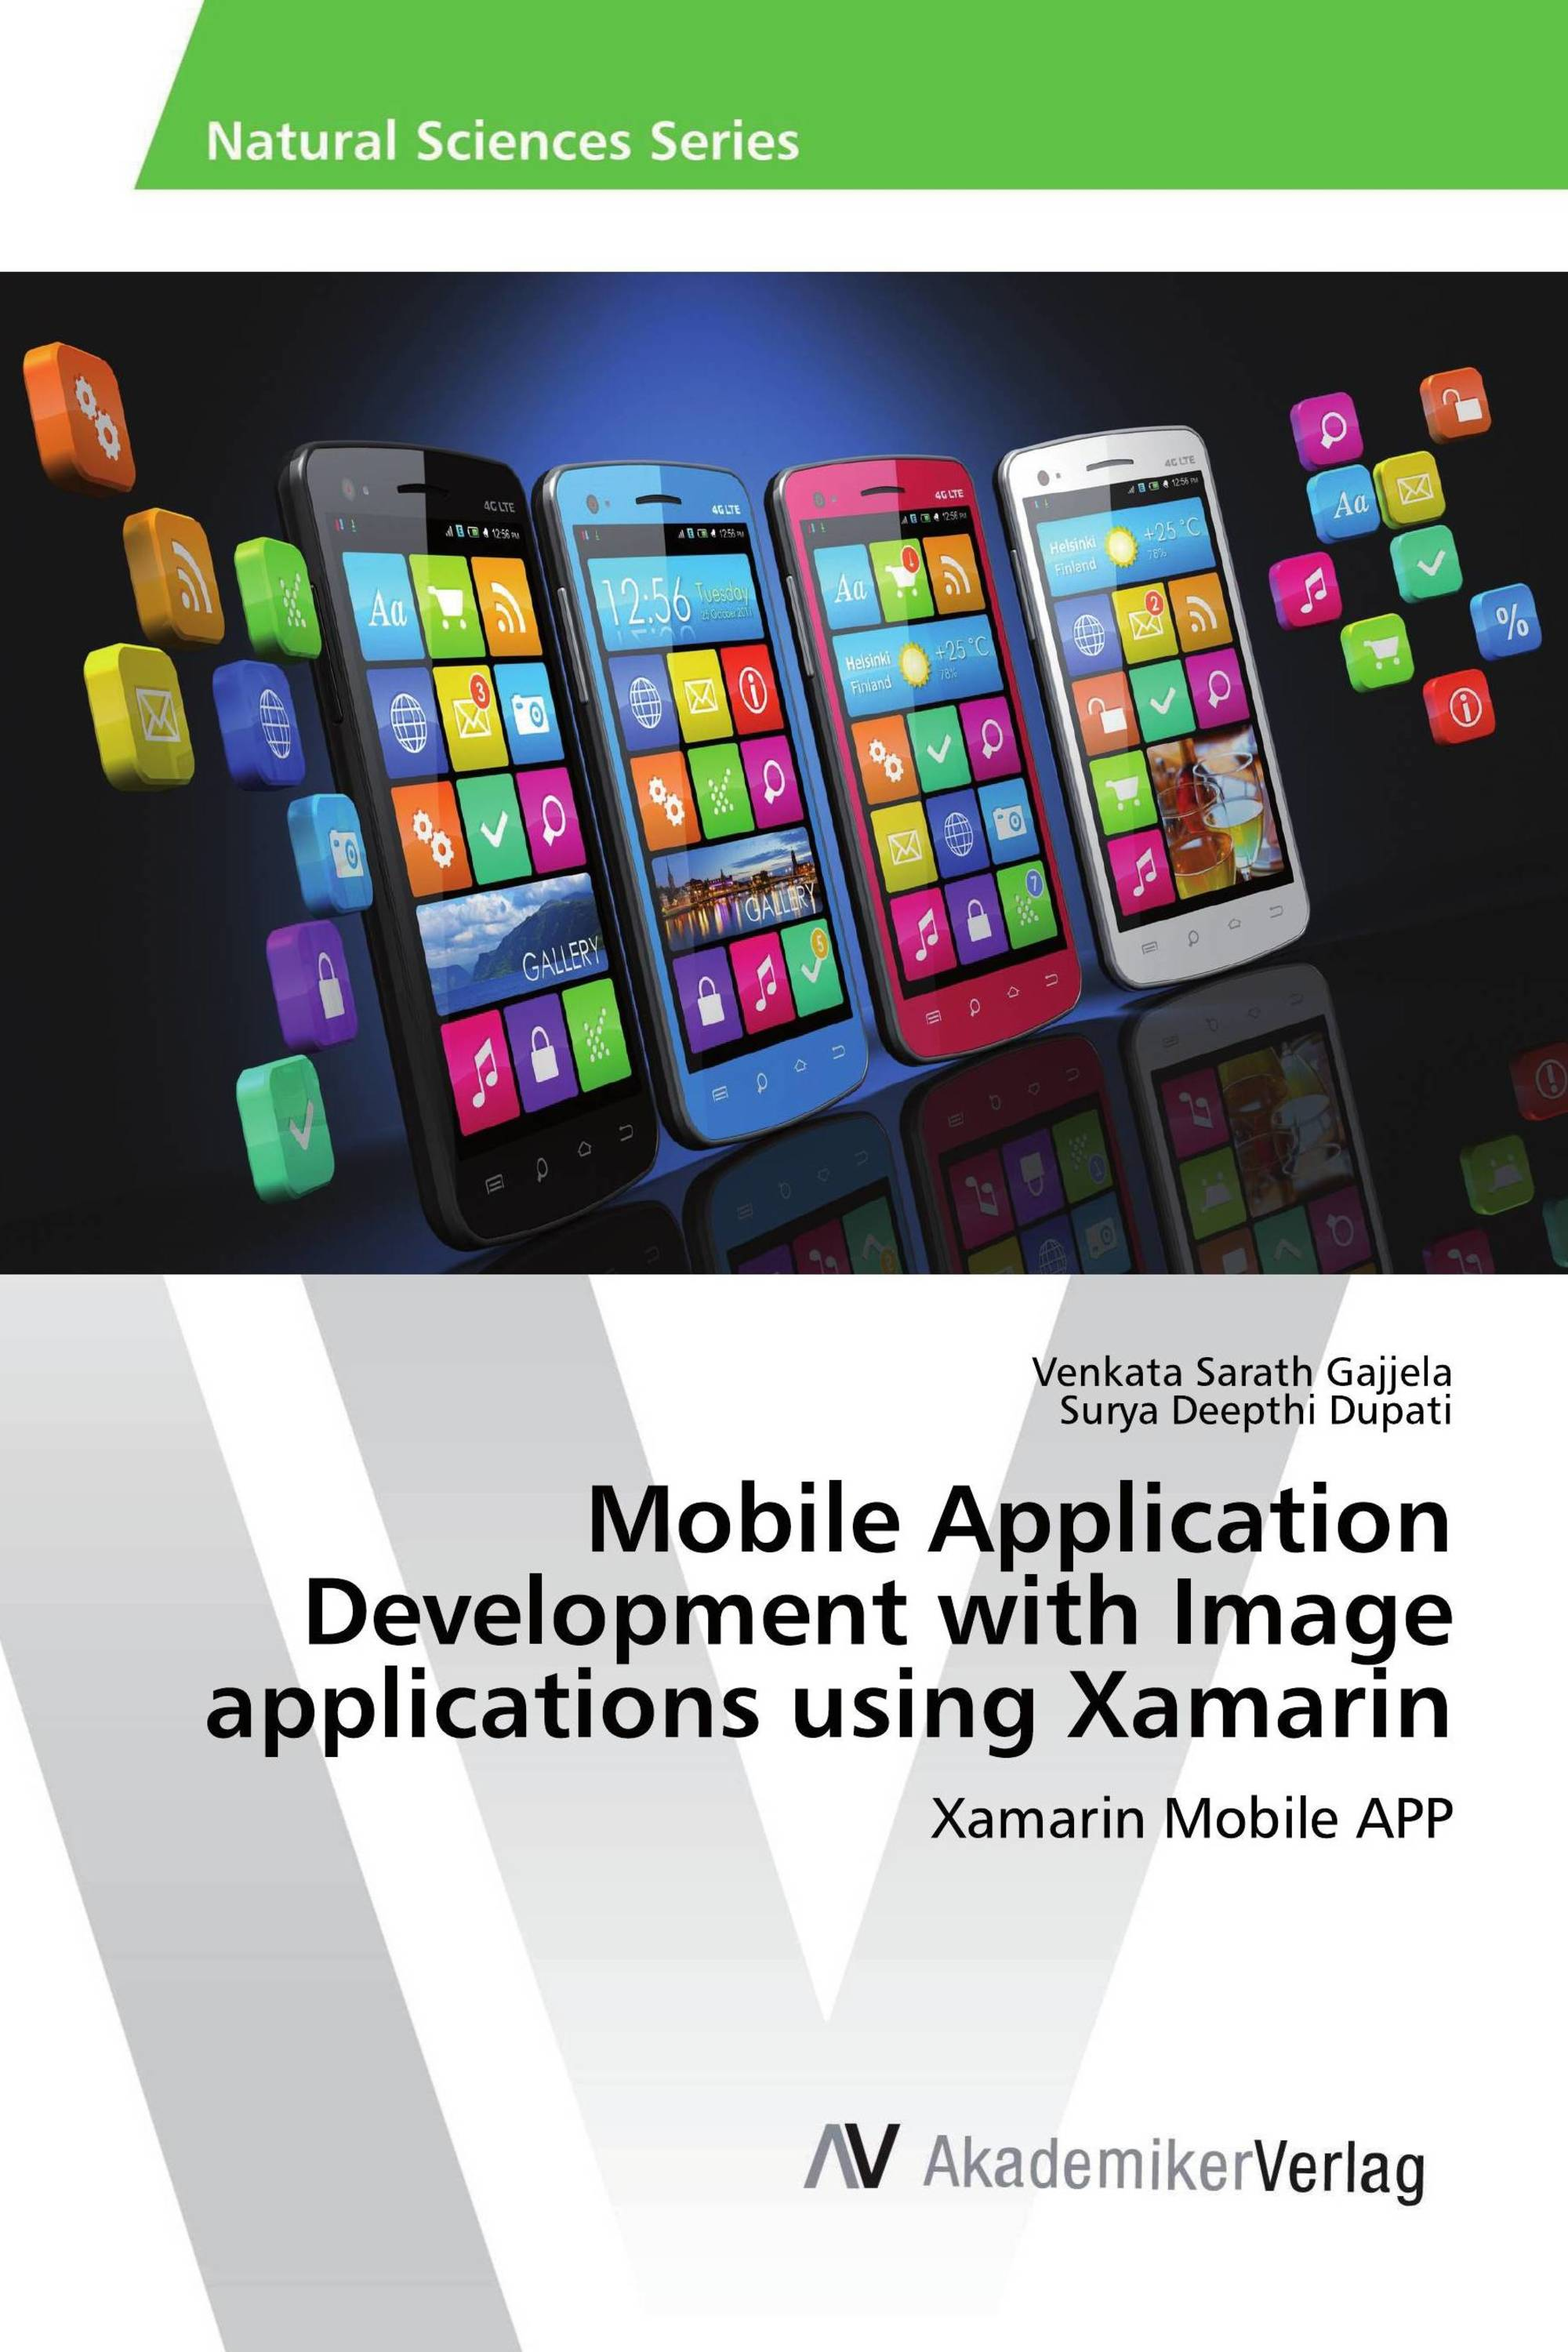 Mobile Application Development with Image applications using